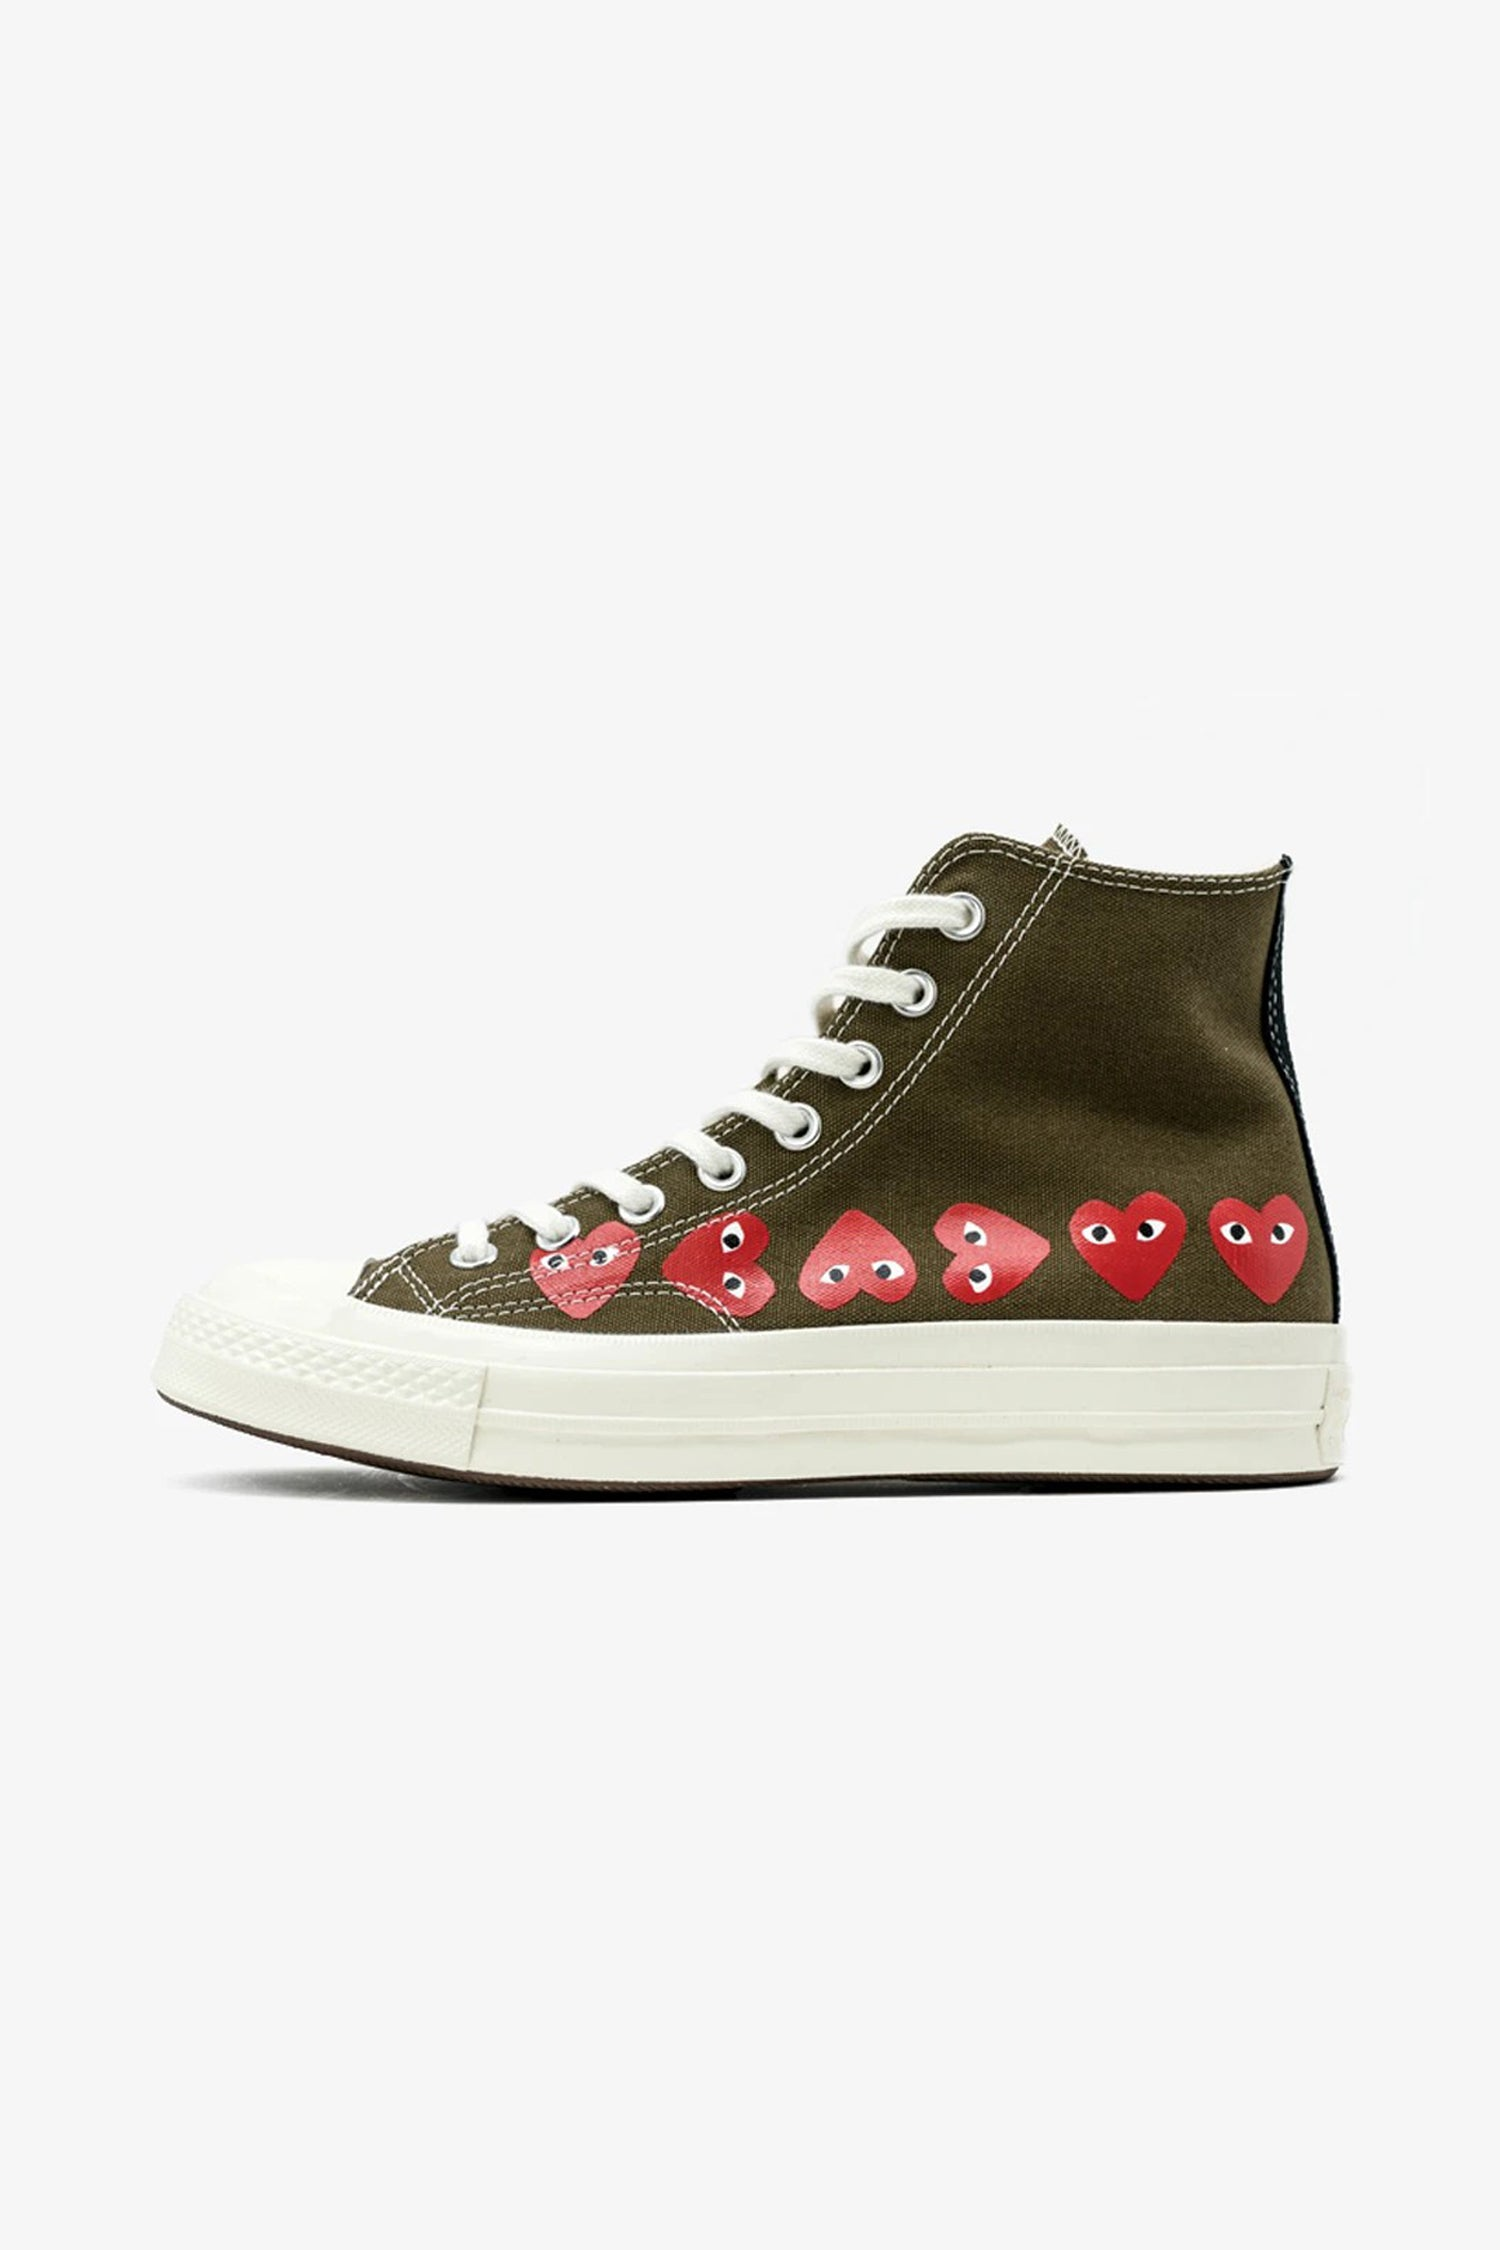 FRAME - COMME DES GARCONS PLAY Converse Chuck Taylor All Star '70 High Multi Red Heart